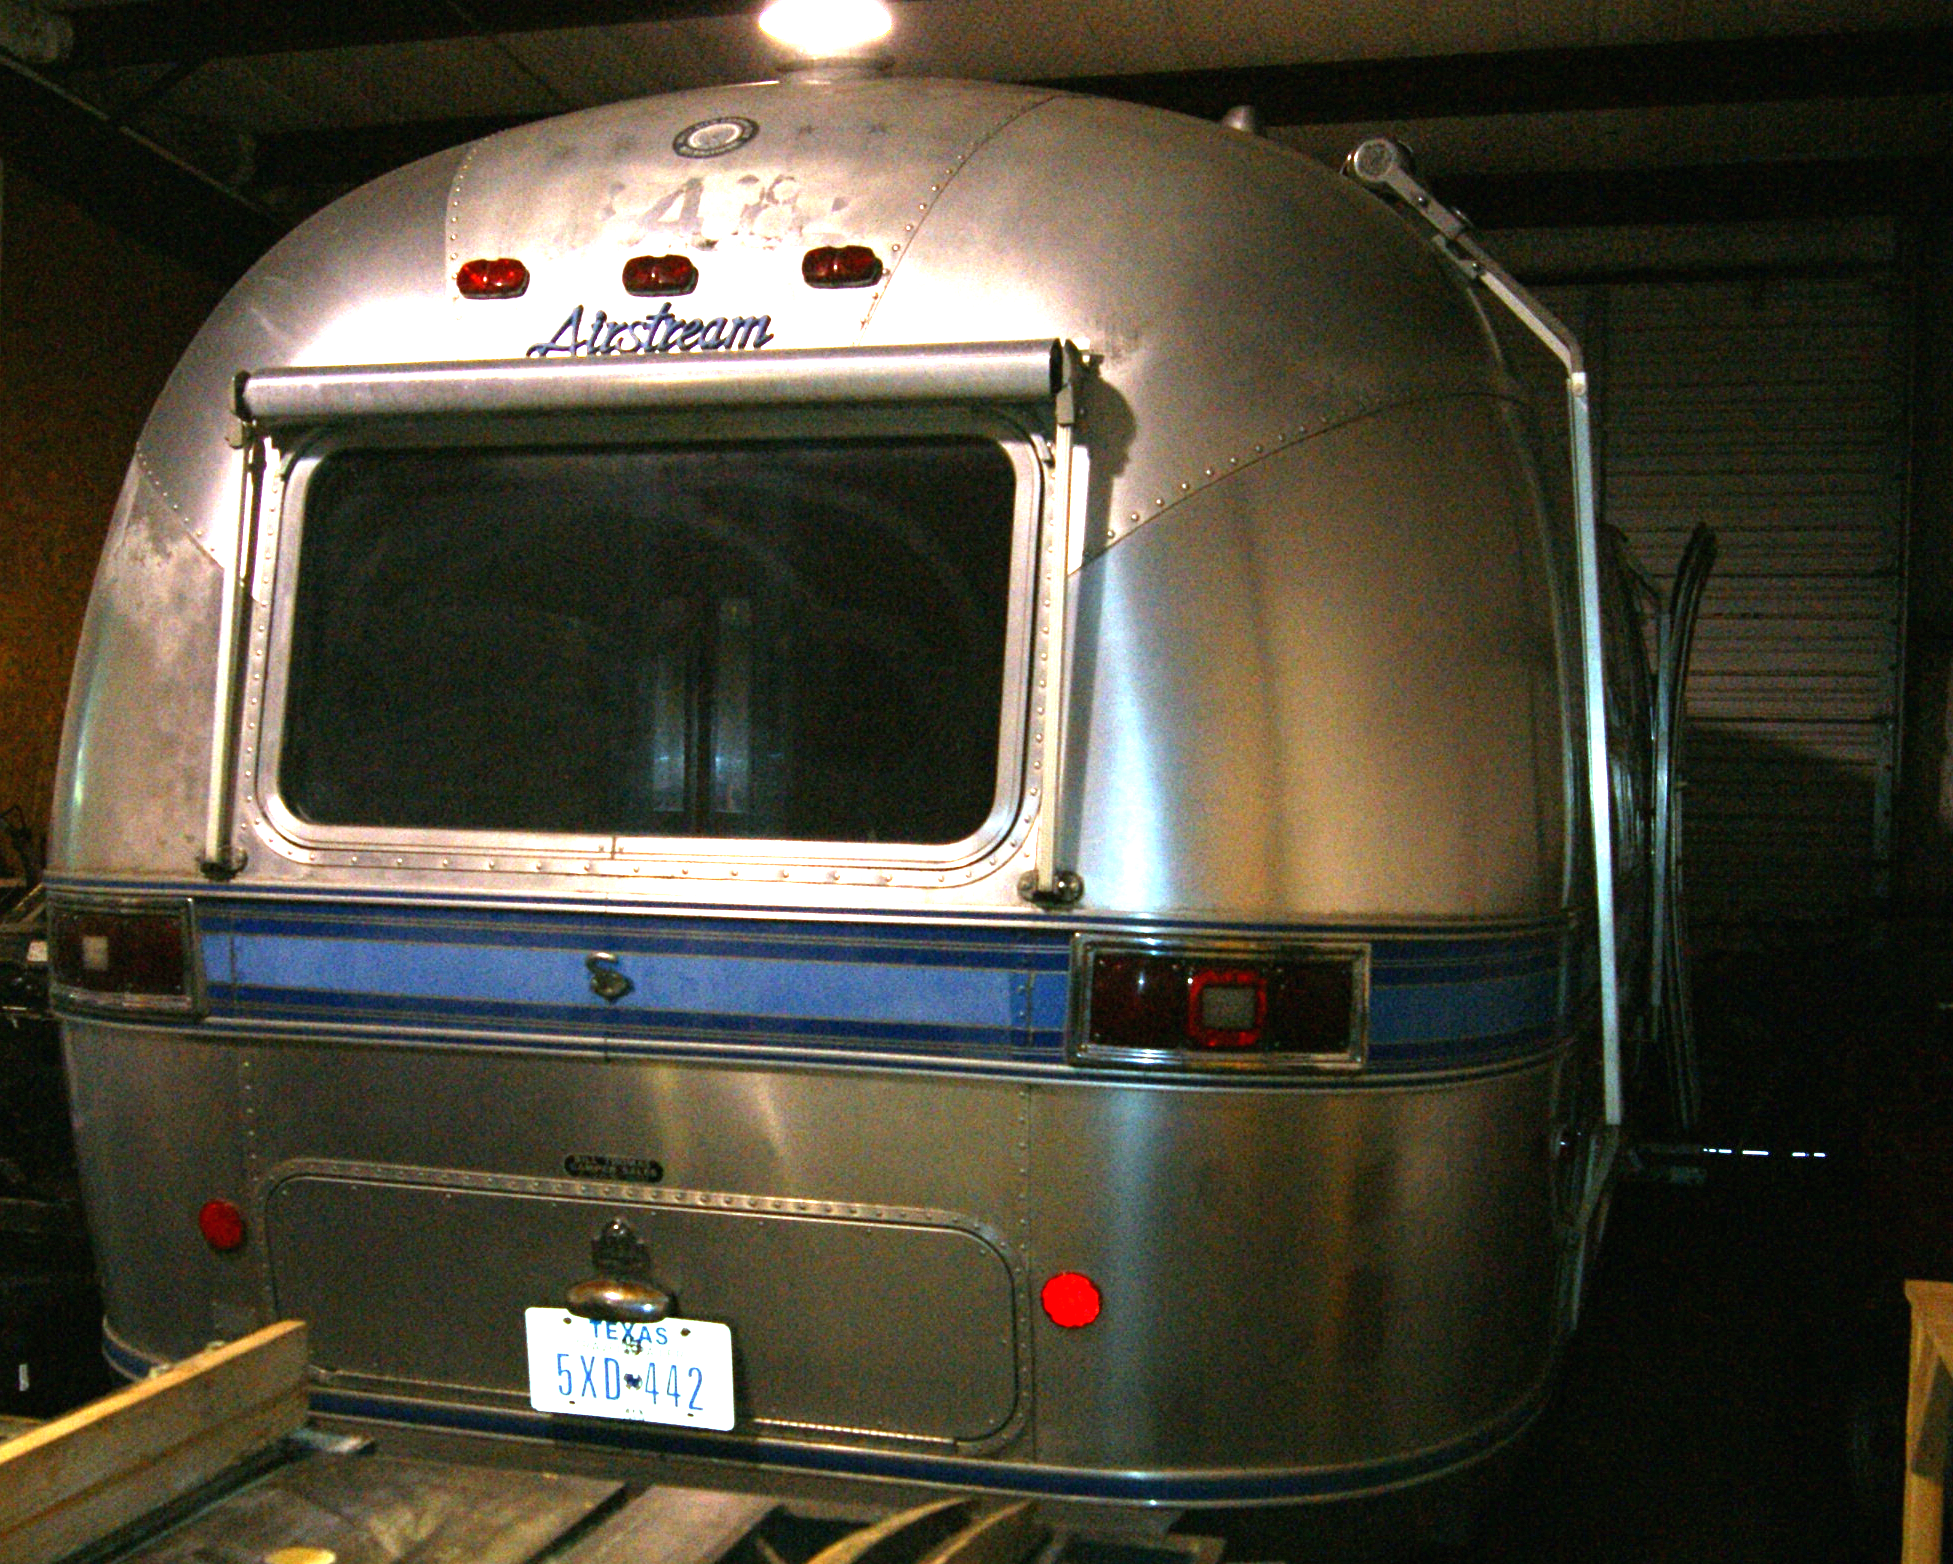 1983 28' Airstream in garage